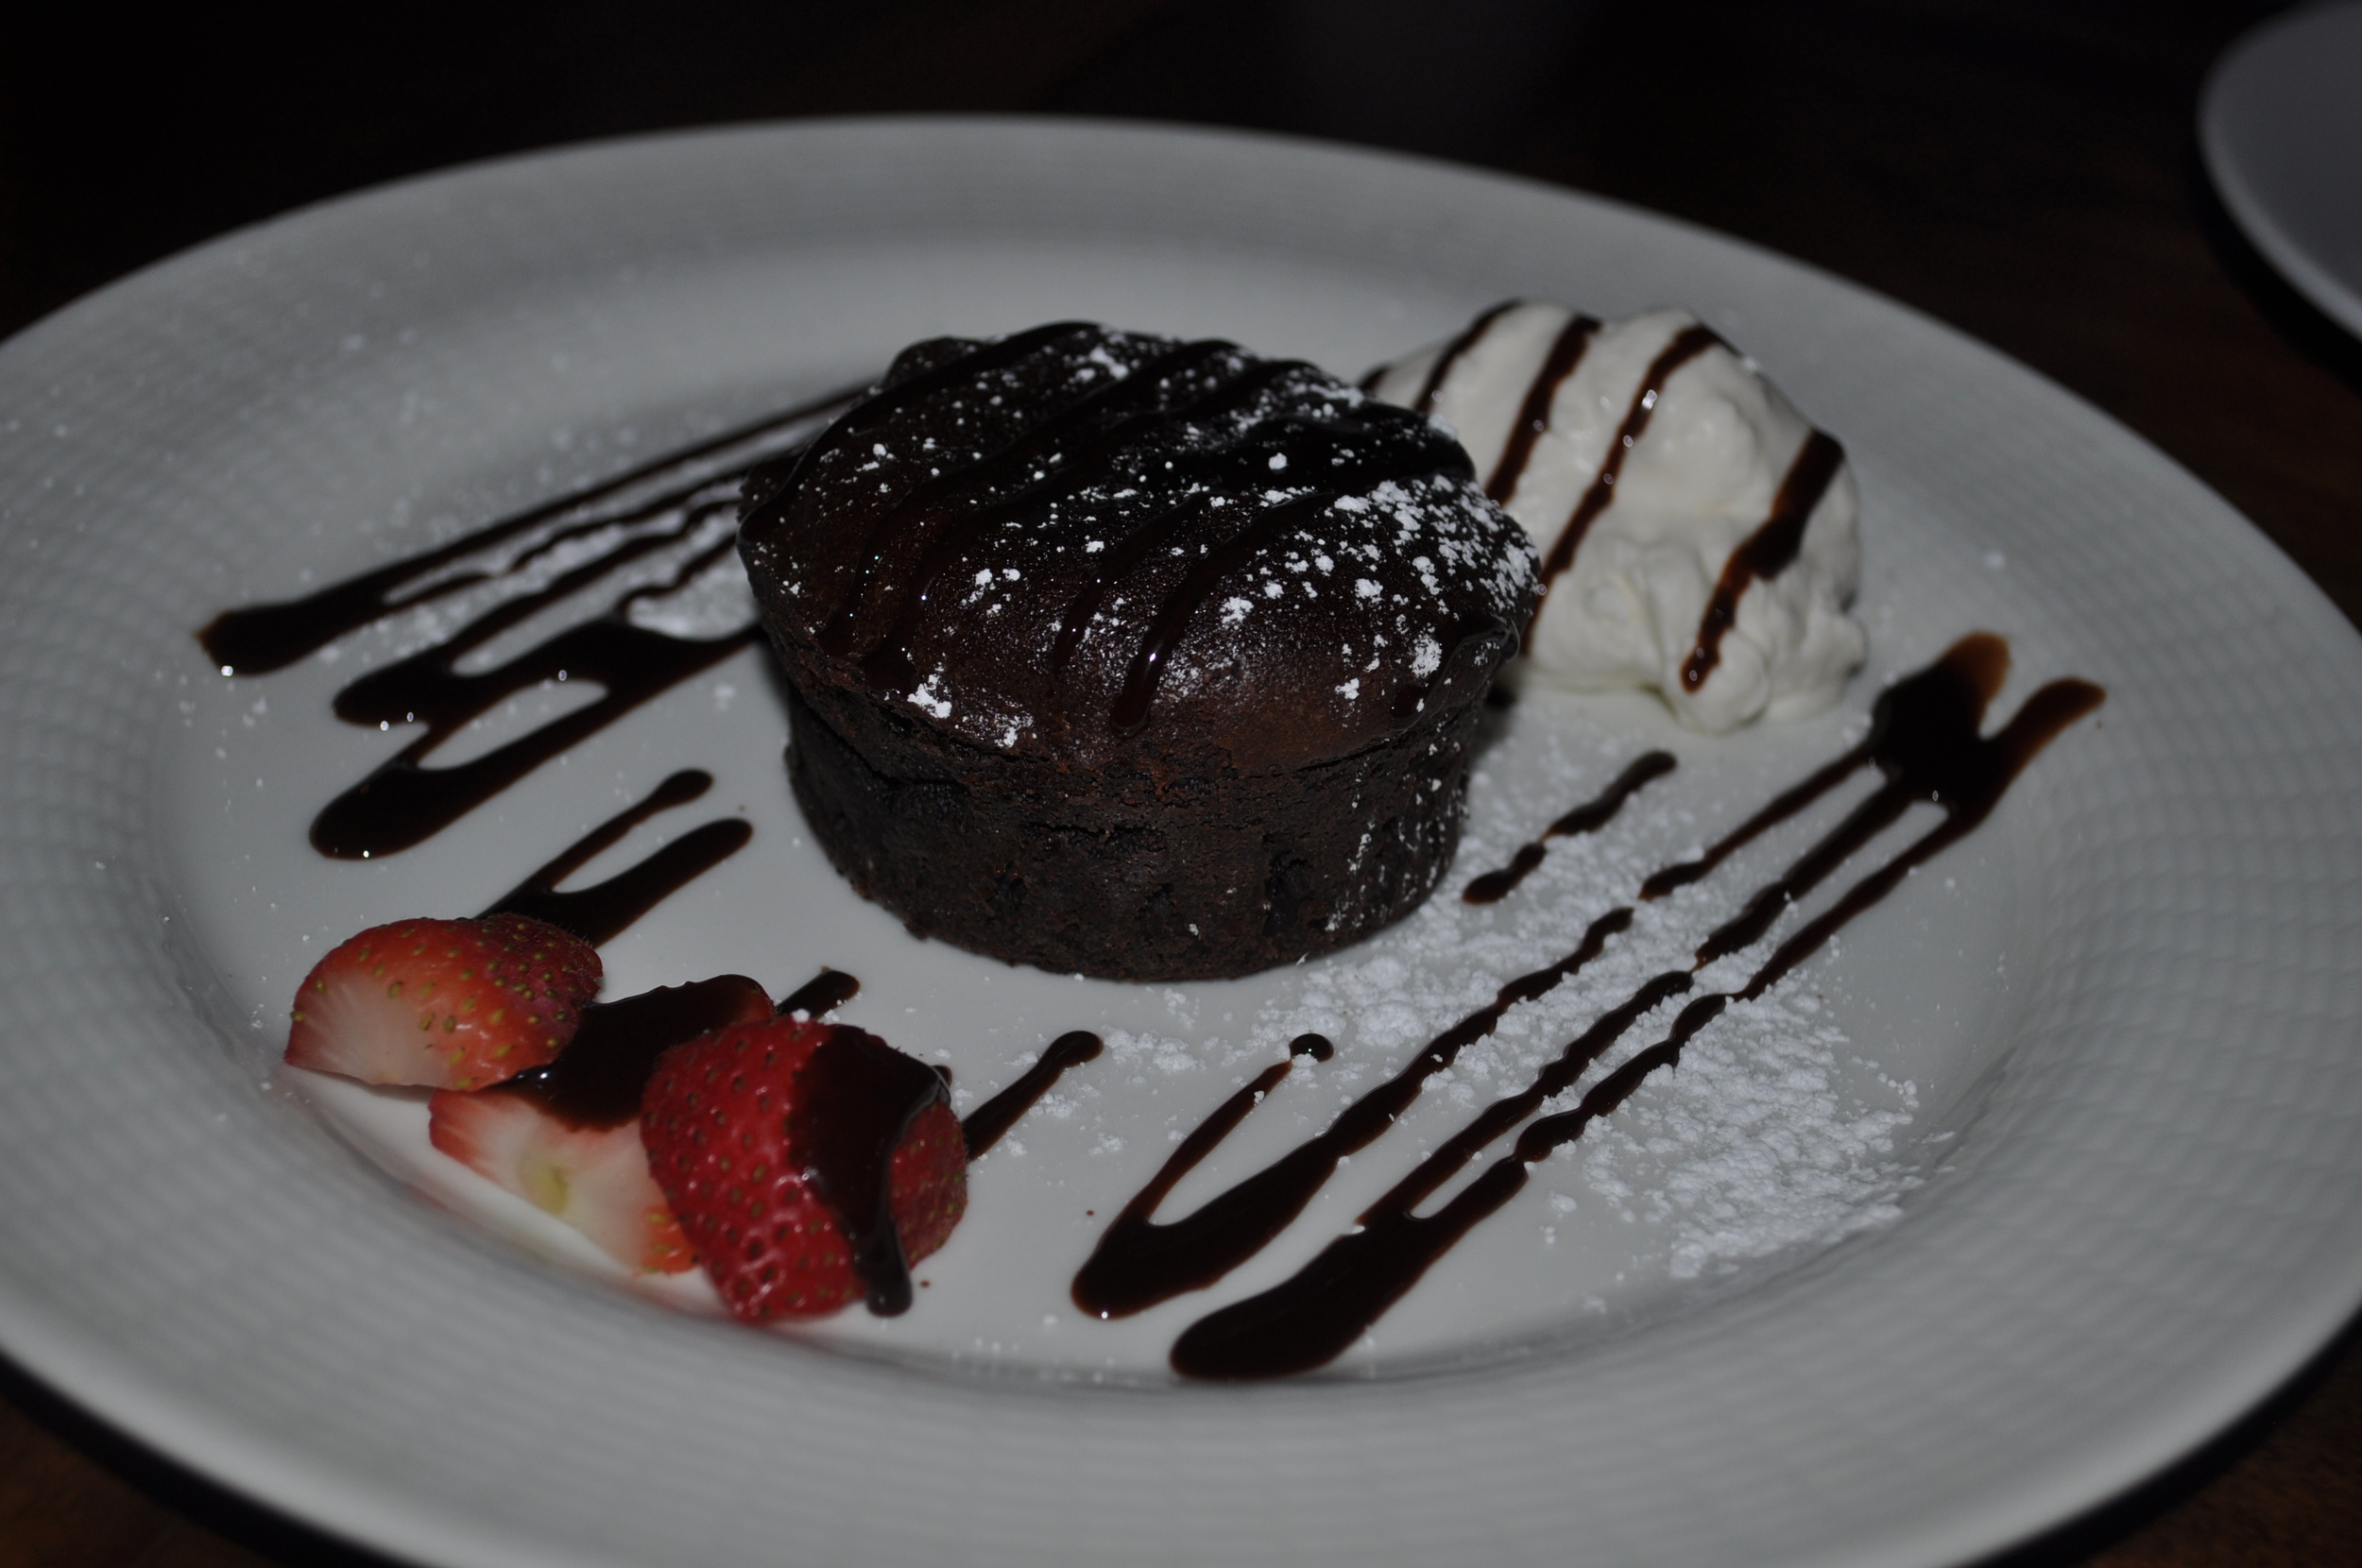 Gooey lava cake goes more for cocoa richness than sweetness.